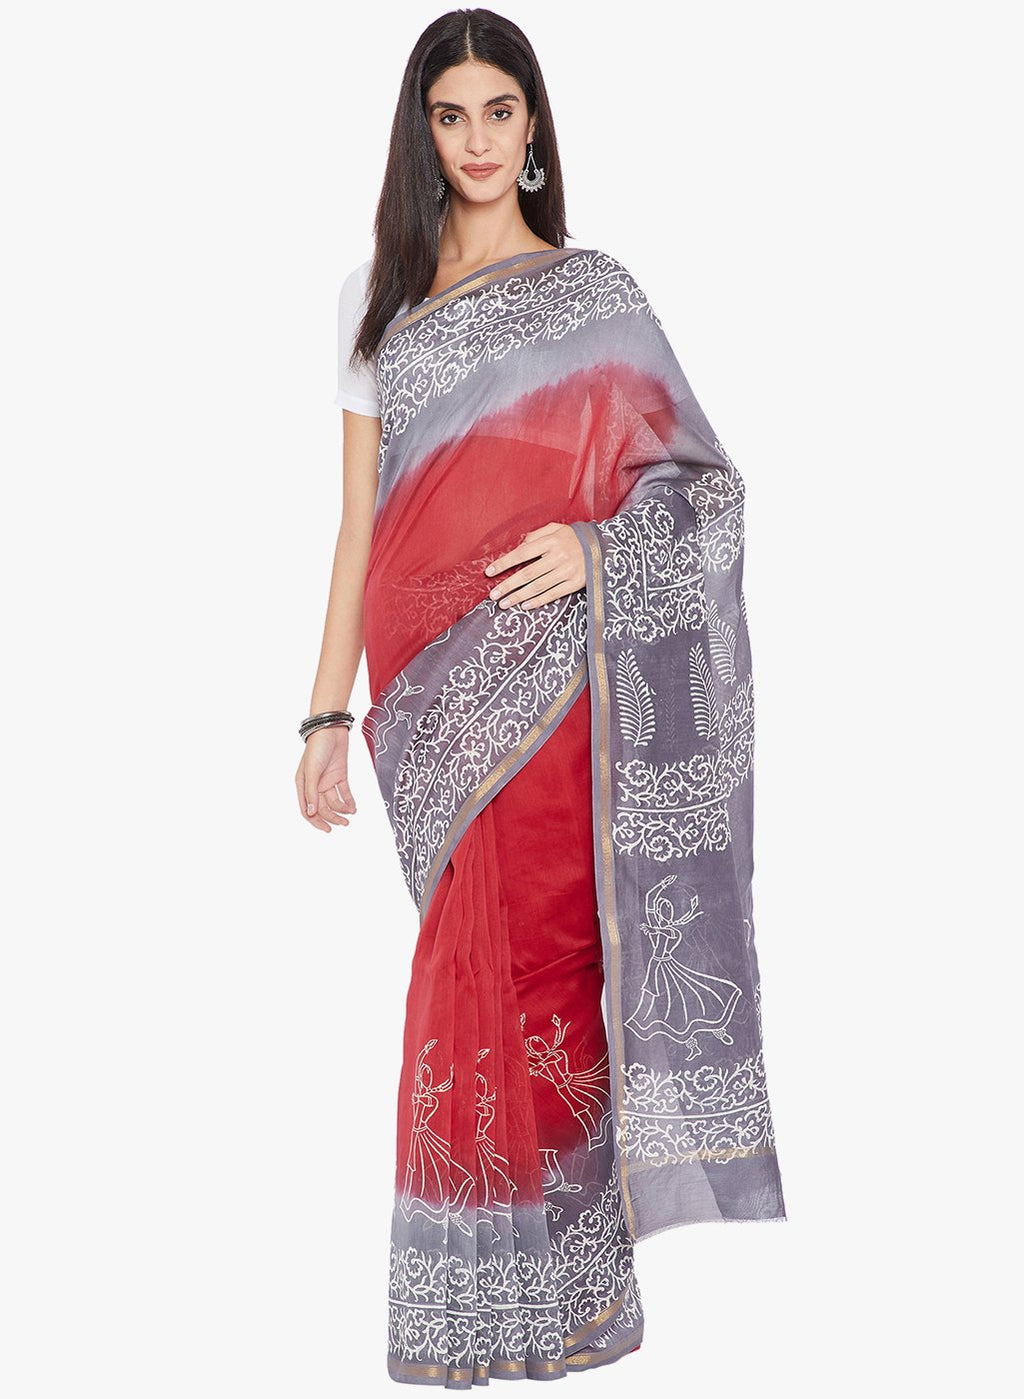 Blue & White Chanderi Silk Hand Block Print Handcrafted Saree-Saree-Kalakari India-RDSNSA0132-Chanderi, Geographical Indication, Hand Blocks, Hand Crafted, Heritage Prints, Sarees, Silk, Sustainable Fabrics-[Linen,Ethnic,wear,Fashionista,Handloom,Handicraft,Indigo,blockprint,block,print,Cotton,Chanderi,Blue, latest,classy,party,bollywood,trendy,summer,style,traditional,formal,elegant,unique,style,hand,block,print, dabu,booti,gift,present,glamorous,affordable,collectible,Sari,Saree,printed, holi,